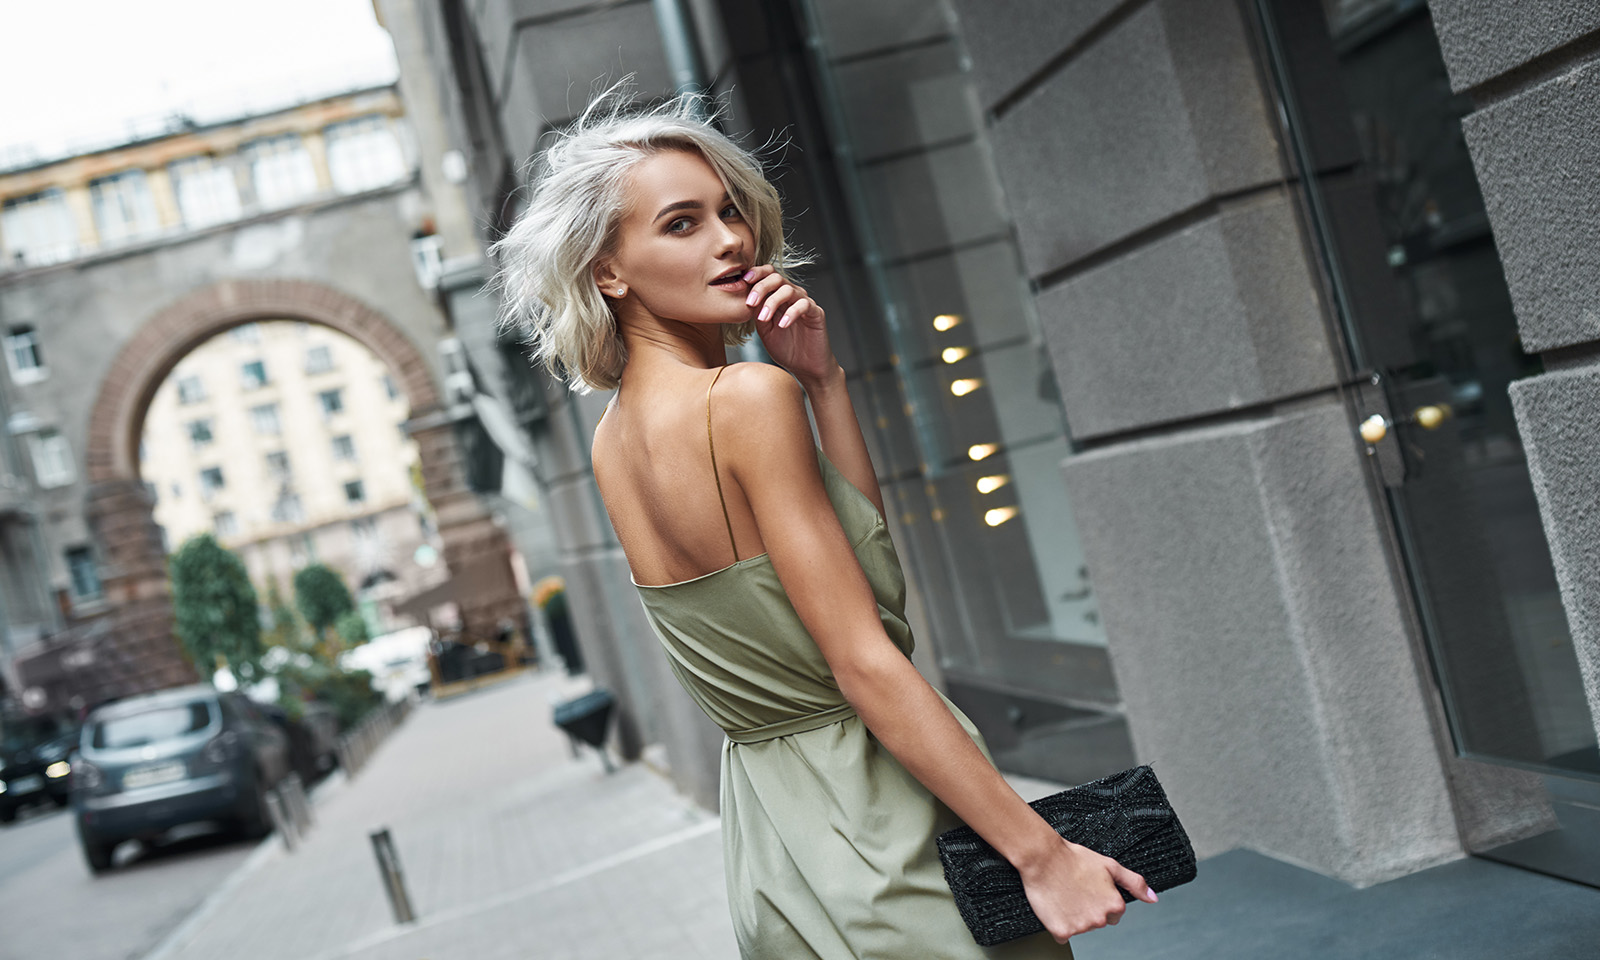 platinum-hair-is-it-for-you-platinum-haired-blonde-walking-on-street-fashionable